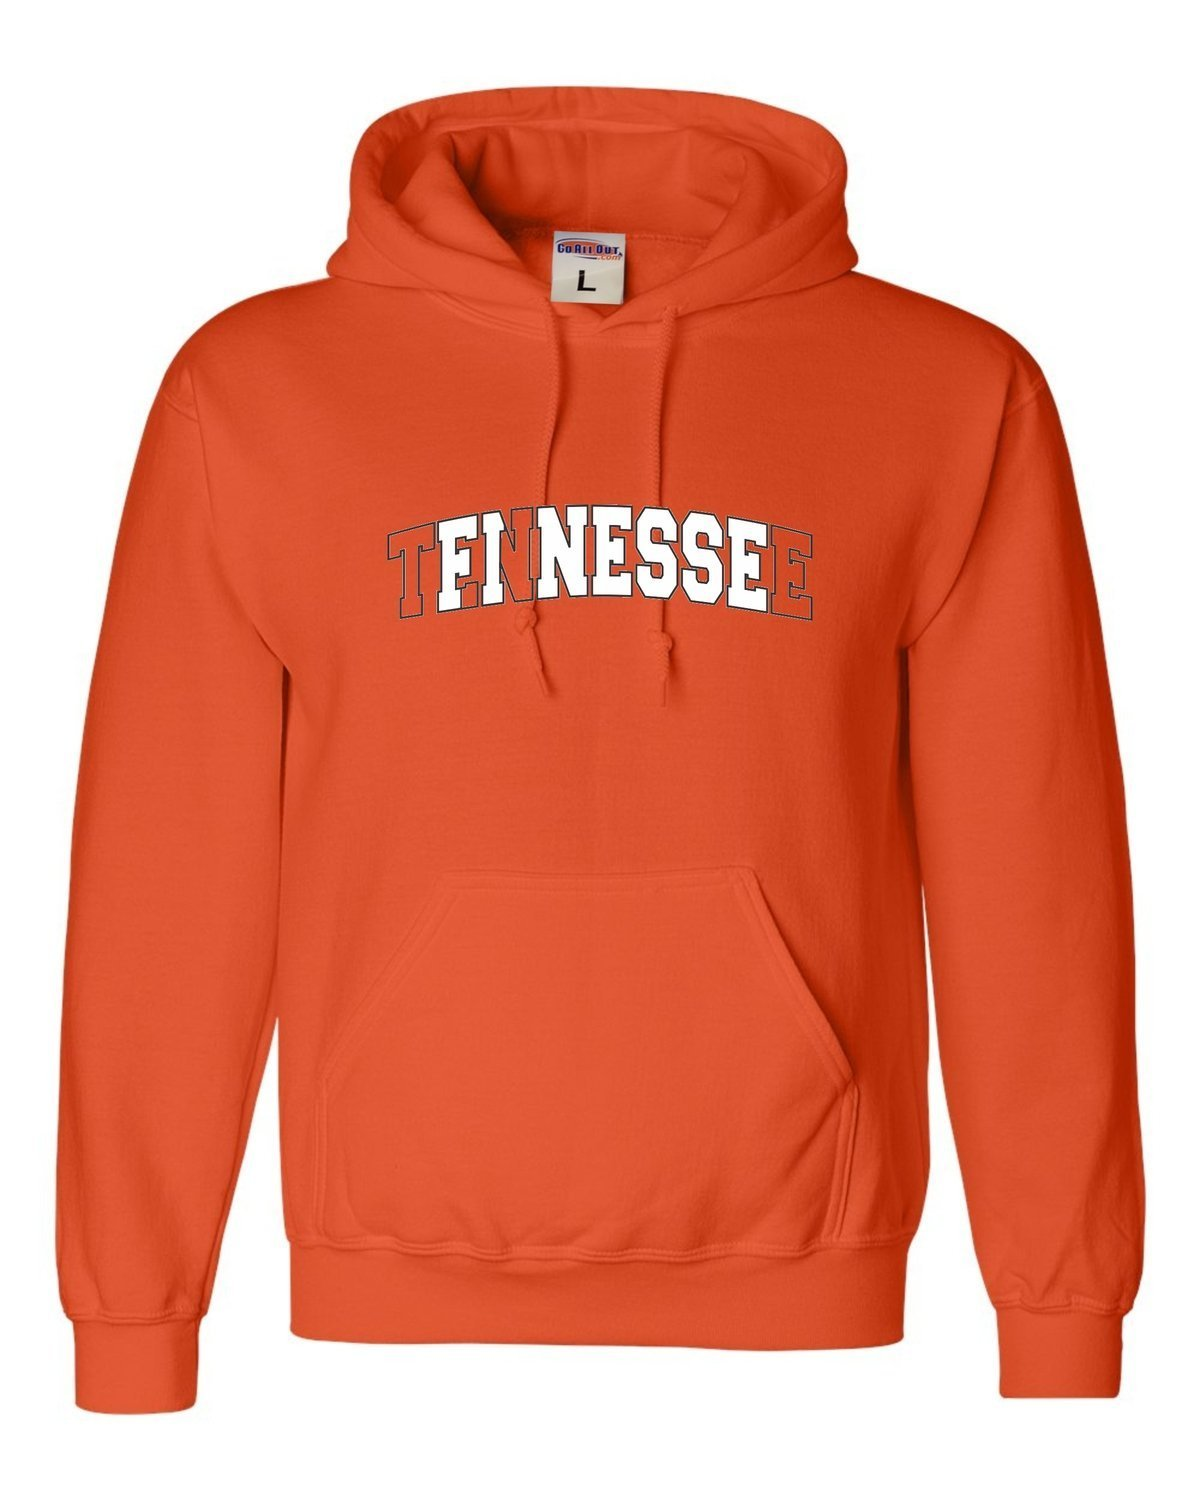 Adult Tennessee Finesse 4150 Shirts